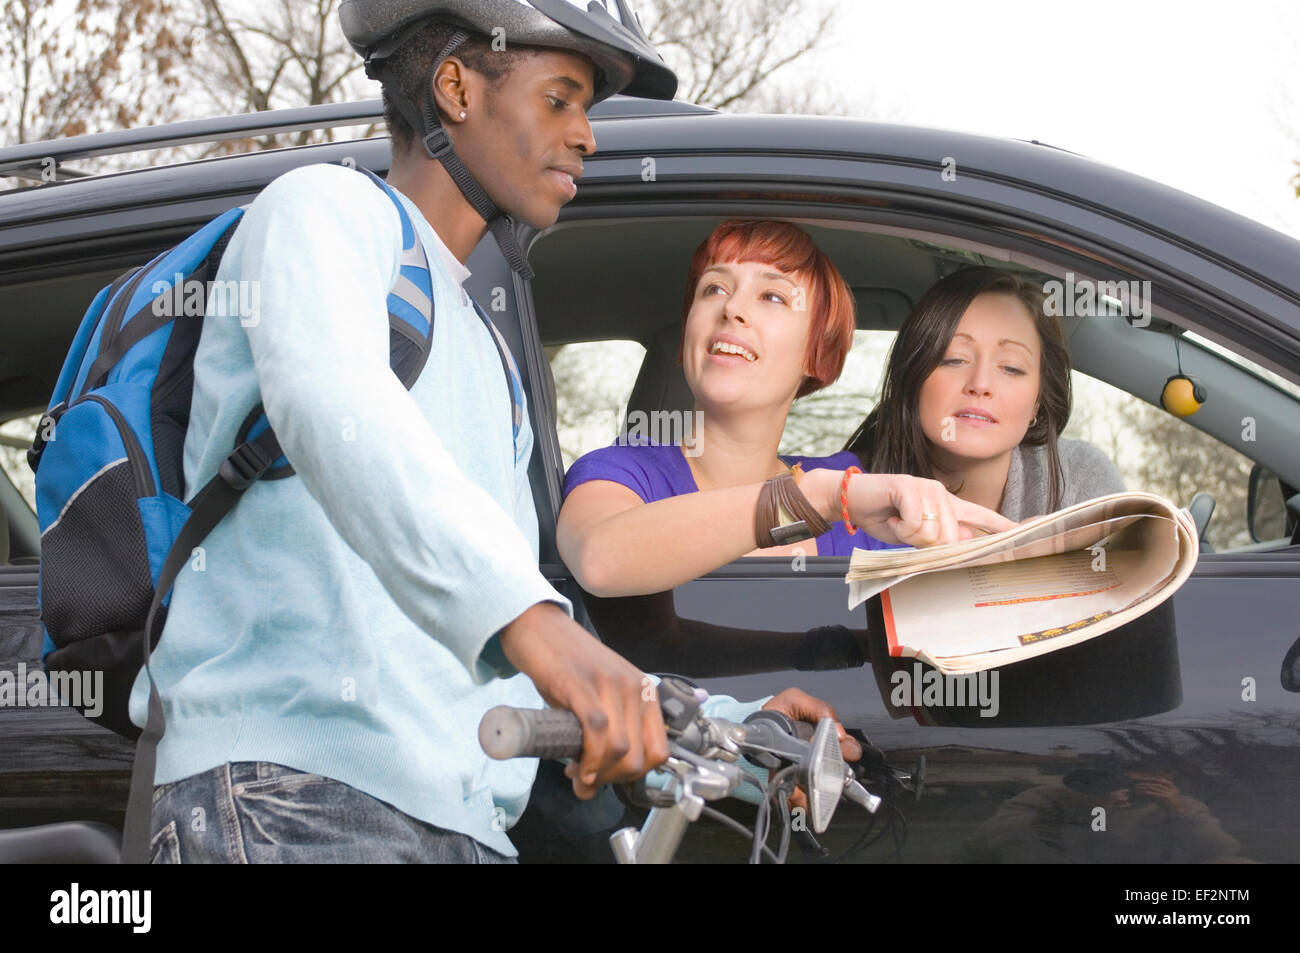 Two women in car asking cyclist for directions Stock Photo